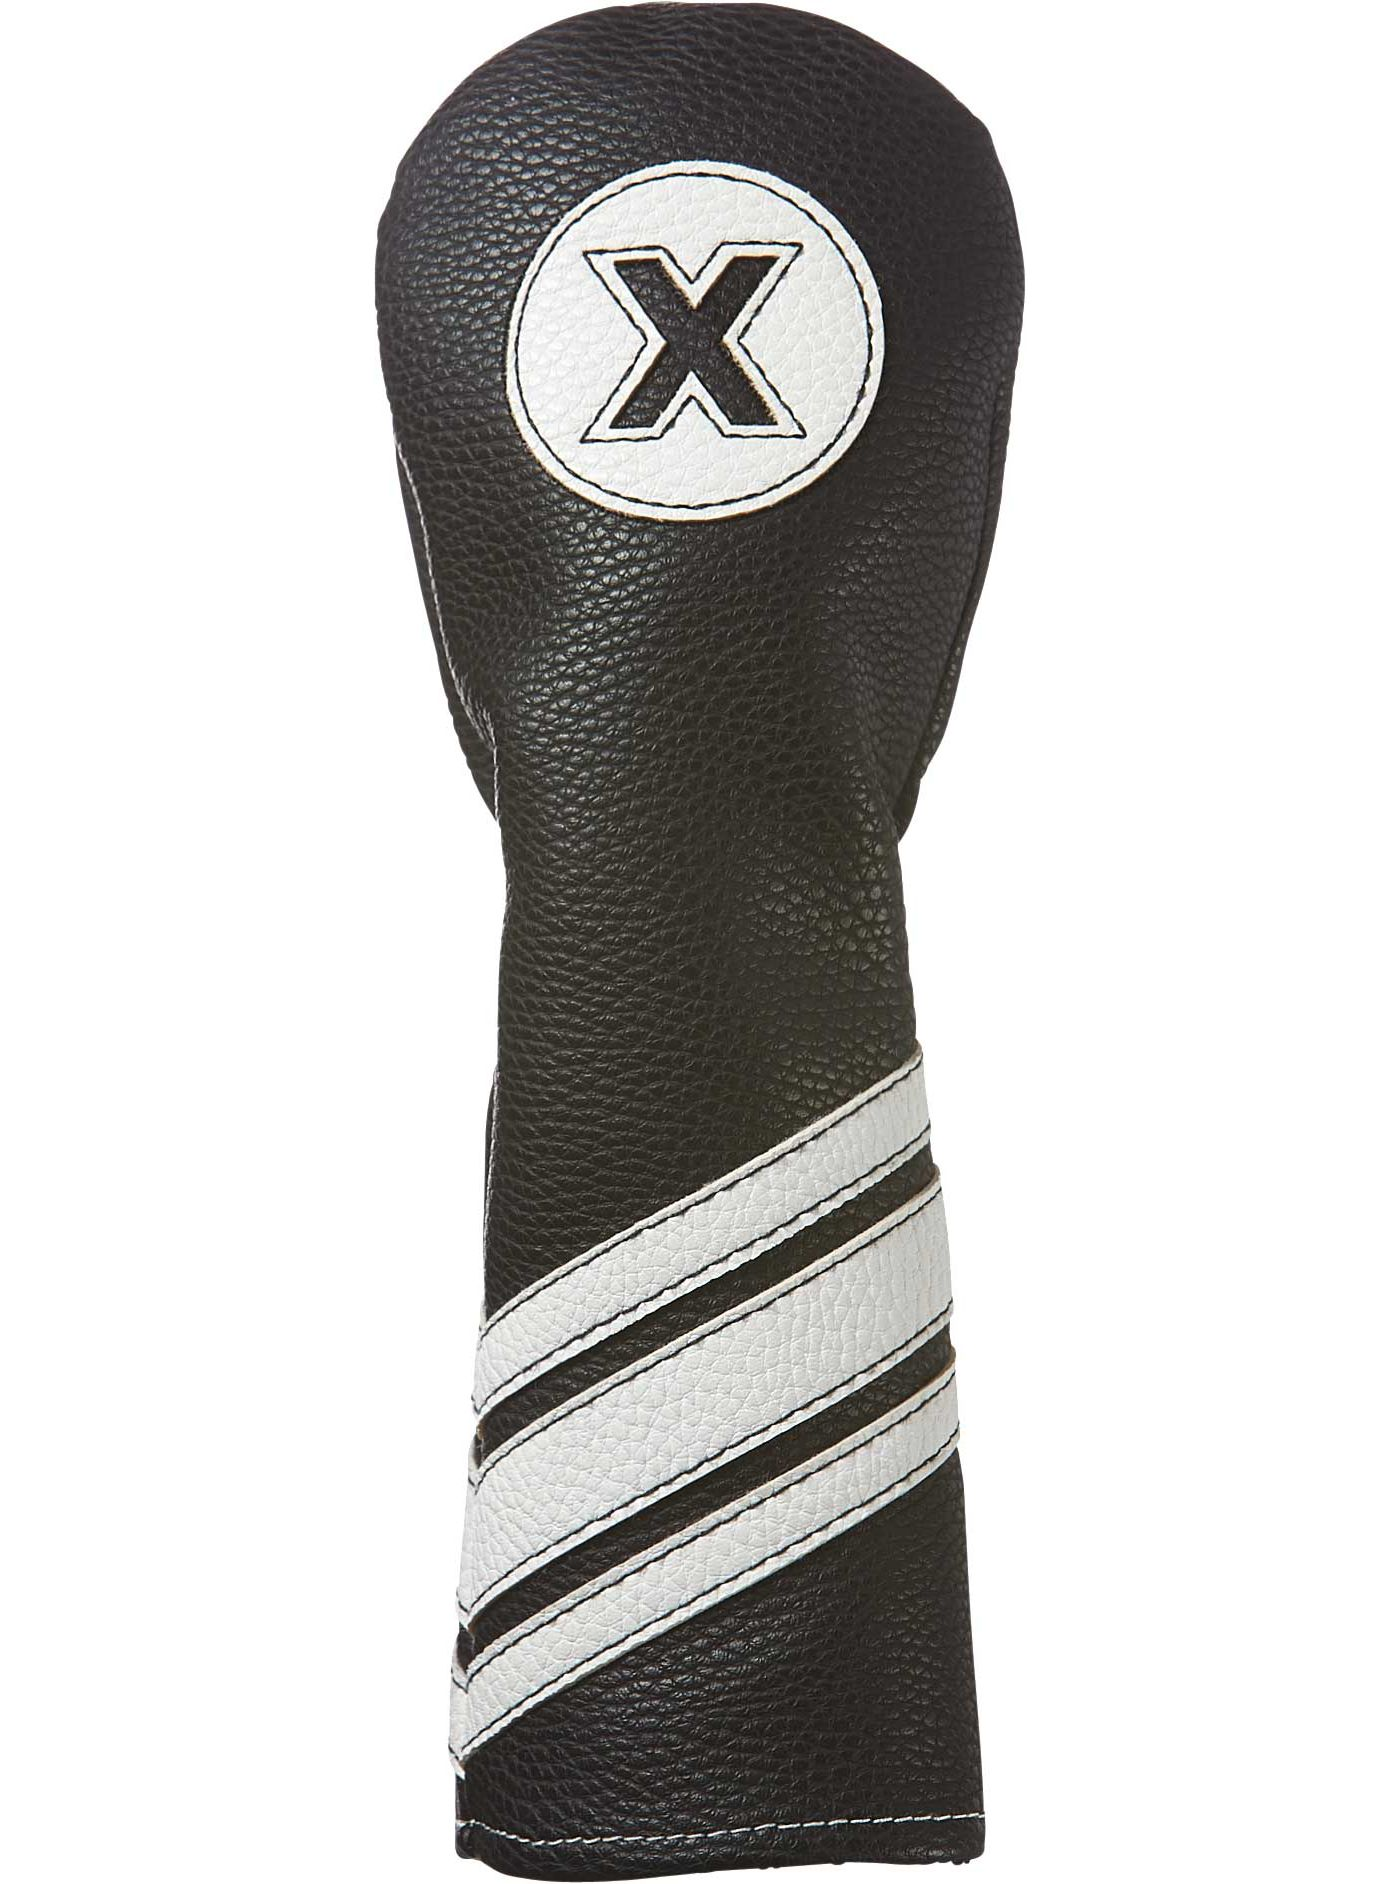 Maxfli Vintage PU Leather Hybrid Headcover